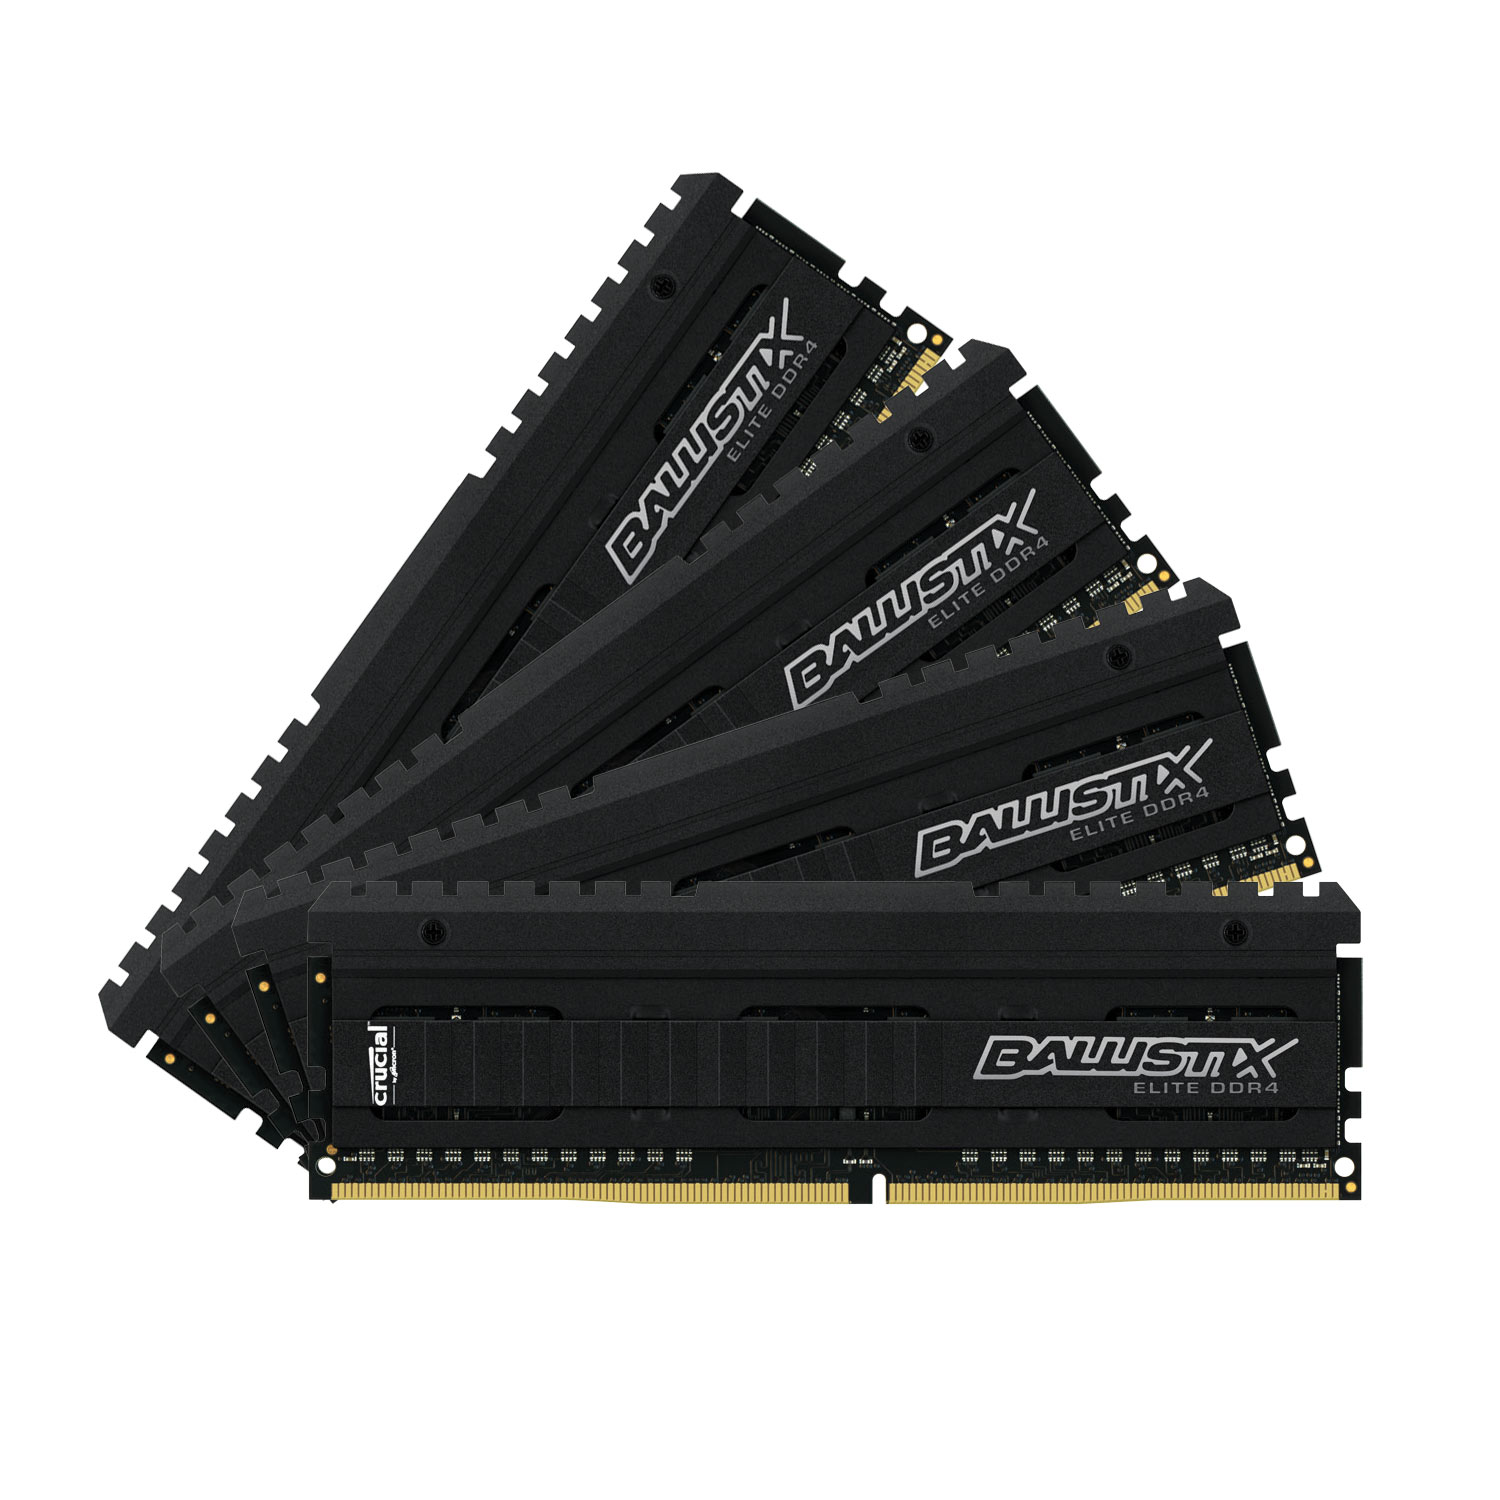 Mémoire PC Ballistix Elite 16 Go (4 x 4 Go) DDR4 3000 MHz CL15 Kit Quad Channel RAM DDR4 PC4-24000 - BLE4C4G4D30AEEA (garantie 10 ans par Crucial)